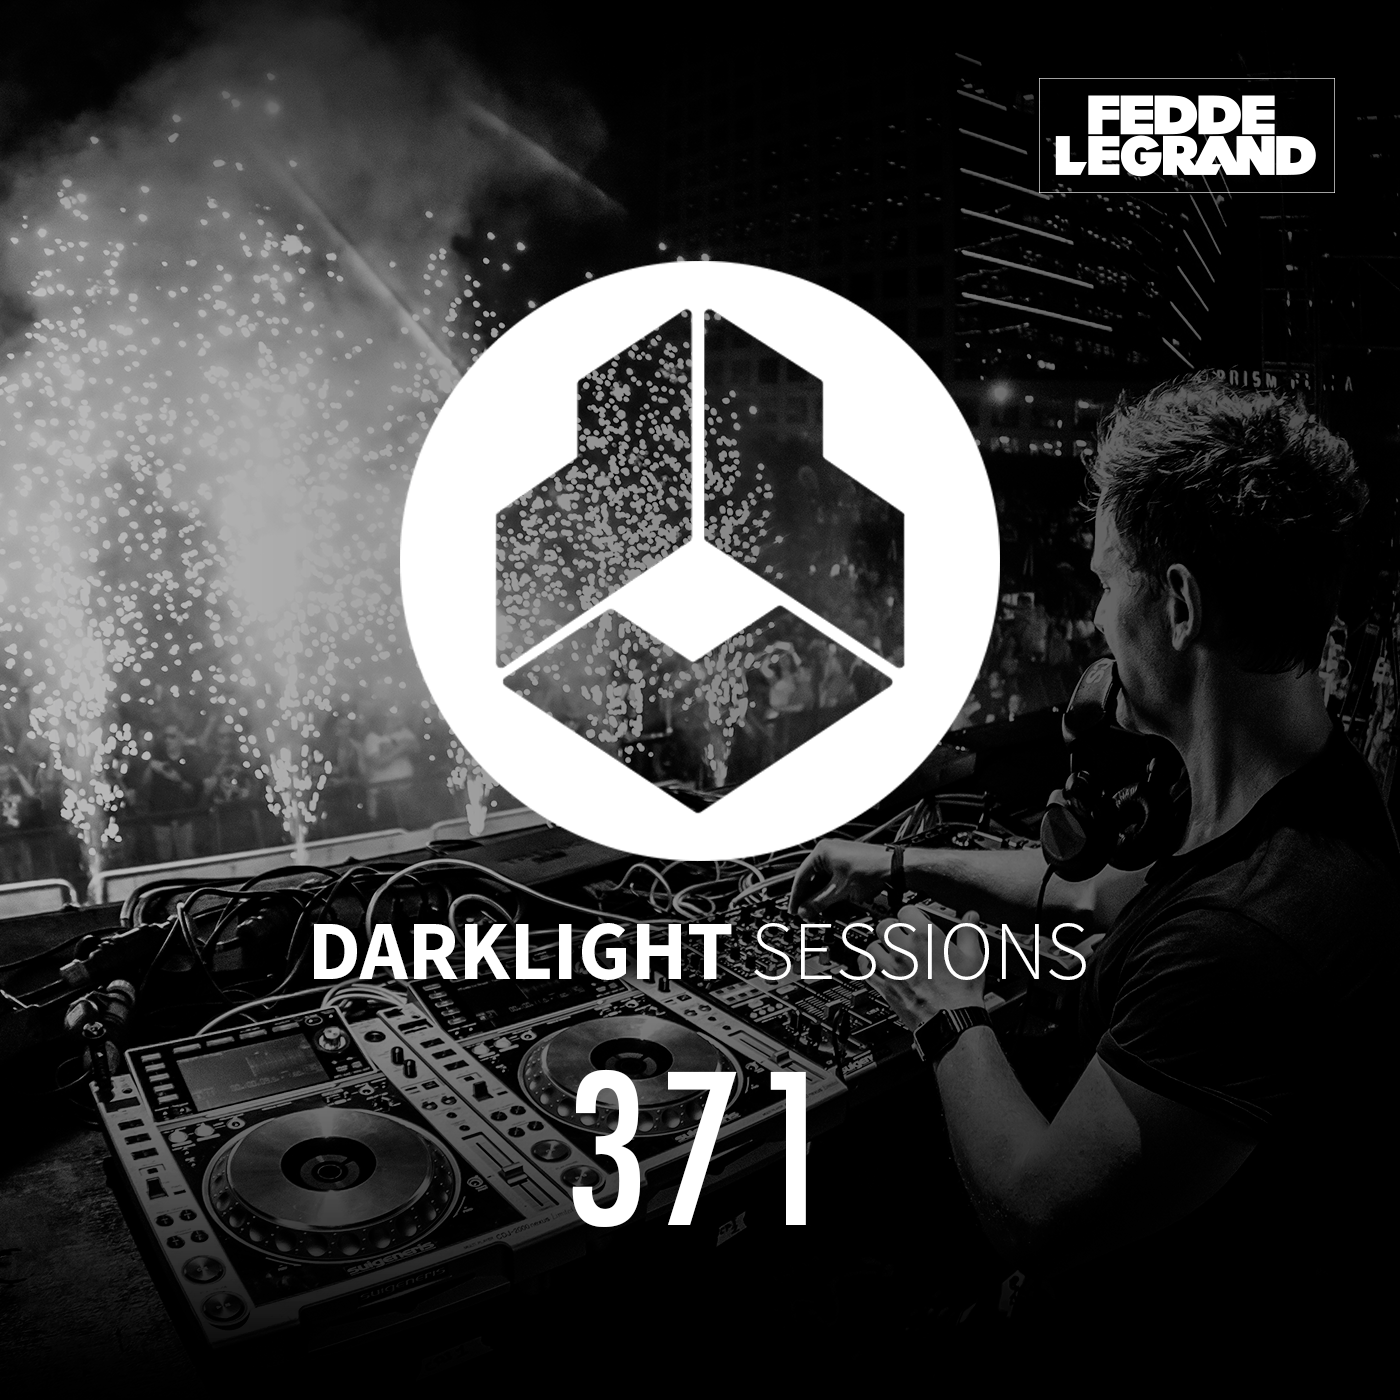 Darklight Sessions 371